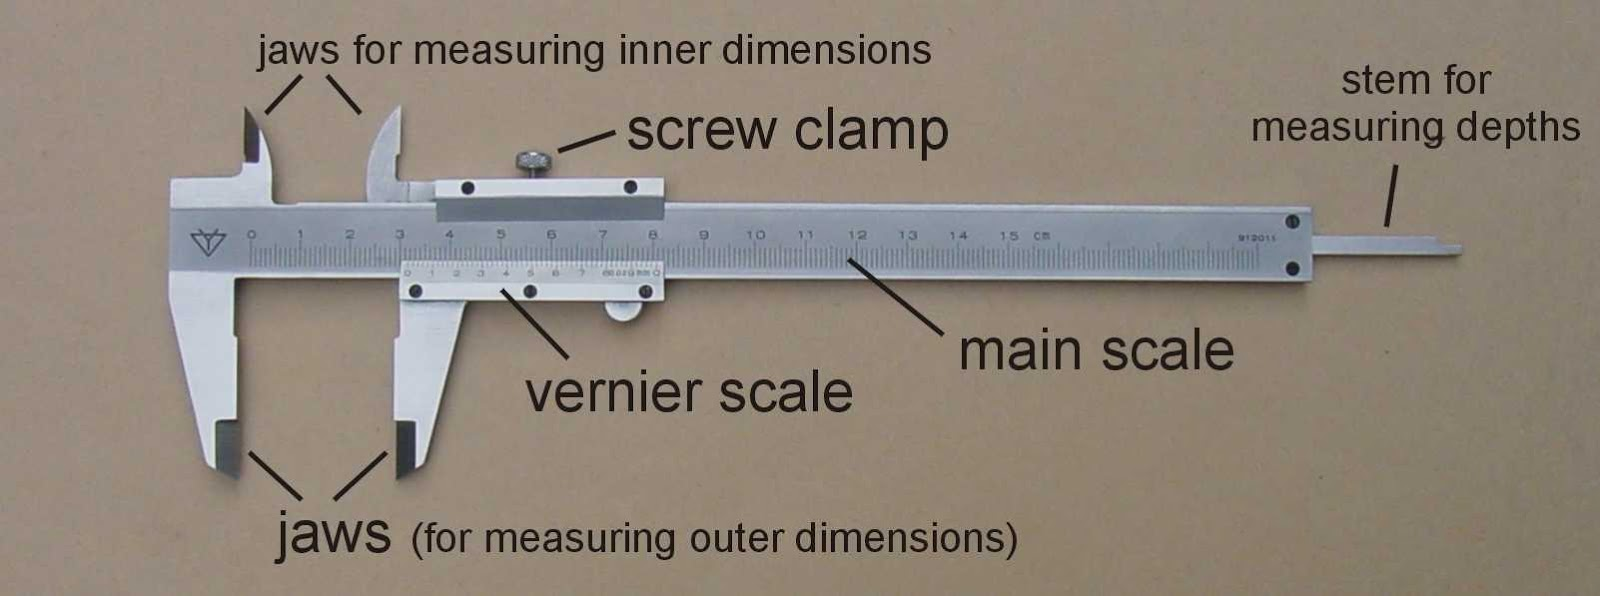 hight resolution of  the diagram below the outside jaws are used to measure the outer dimensions of an object and the inner jaws for the inner ones